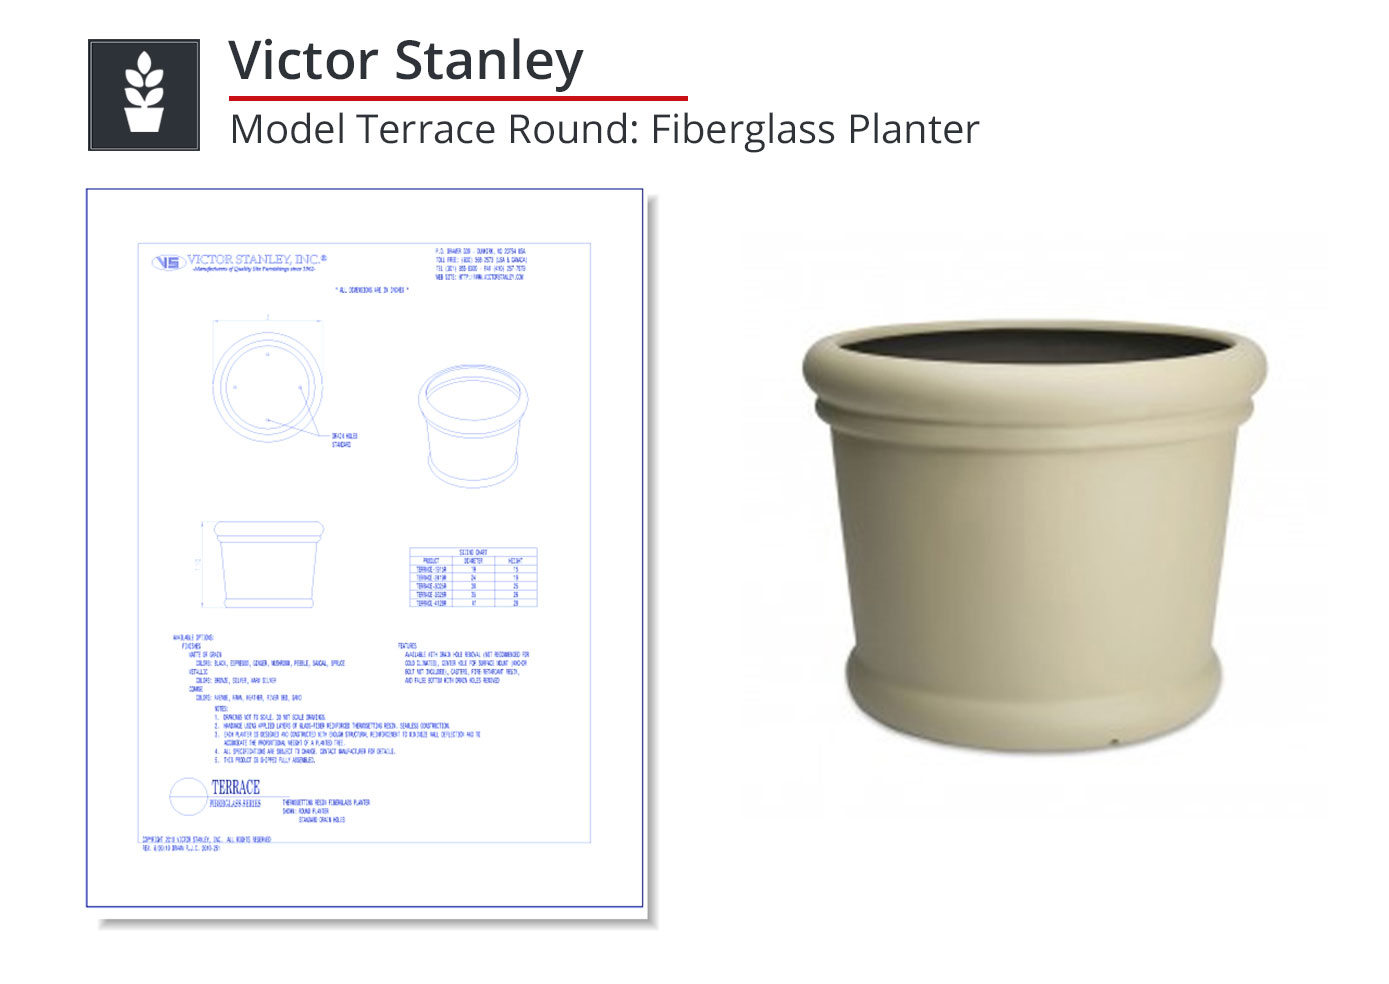 Victor-Stanley-Model-Terrace-Round-Fiberglass-Planter-CAD-Drawing.jpg